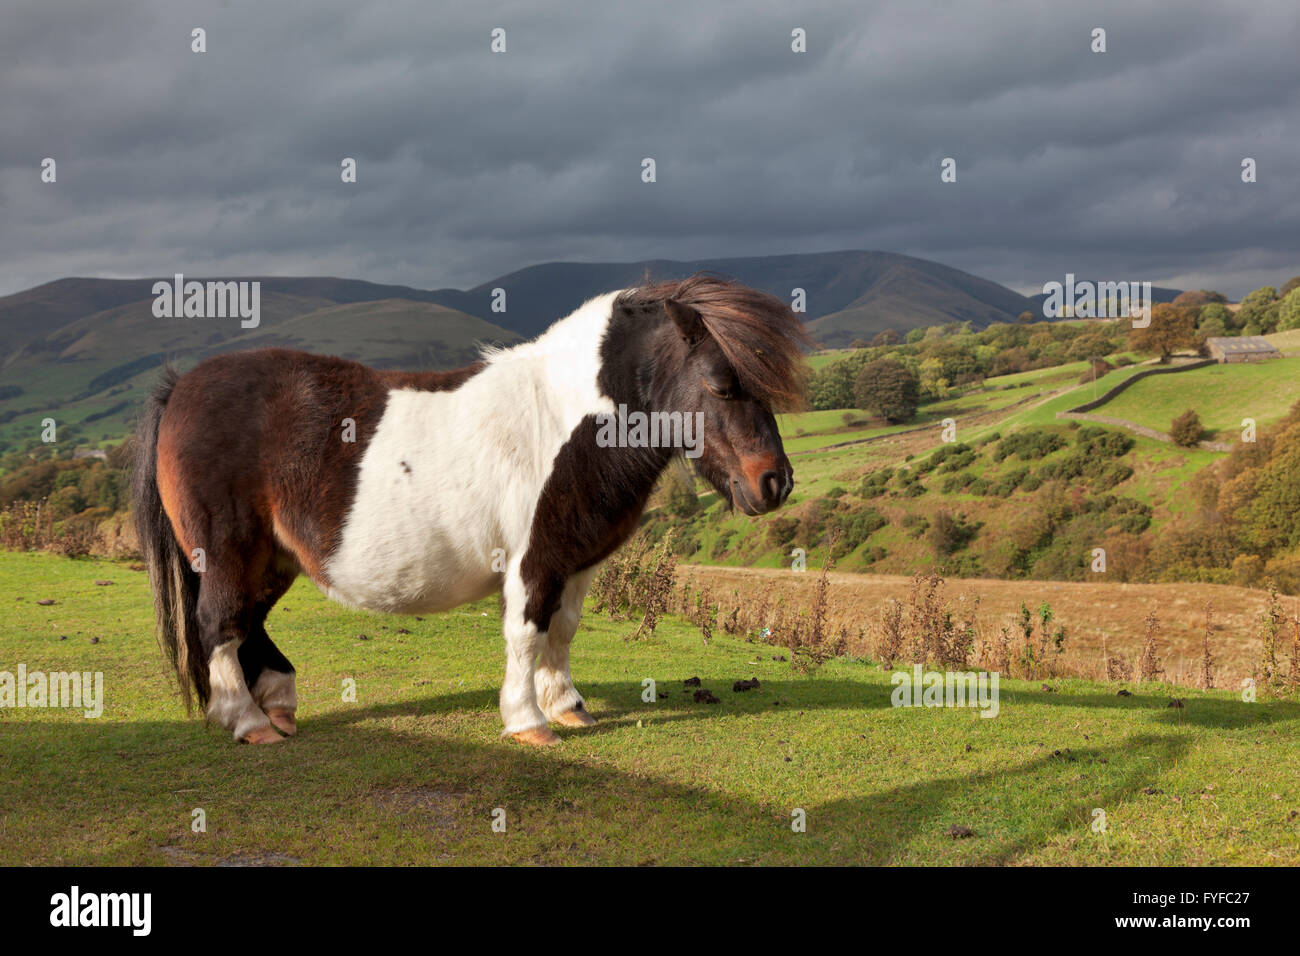 fell and dales breeds of ponies roam free in the yorkshire dales